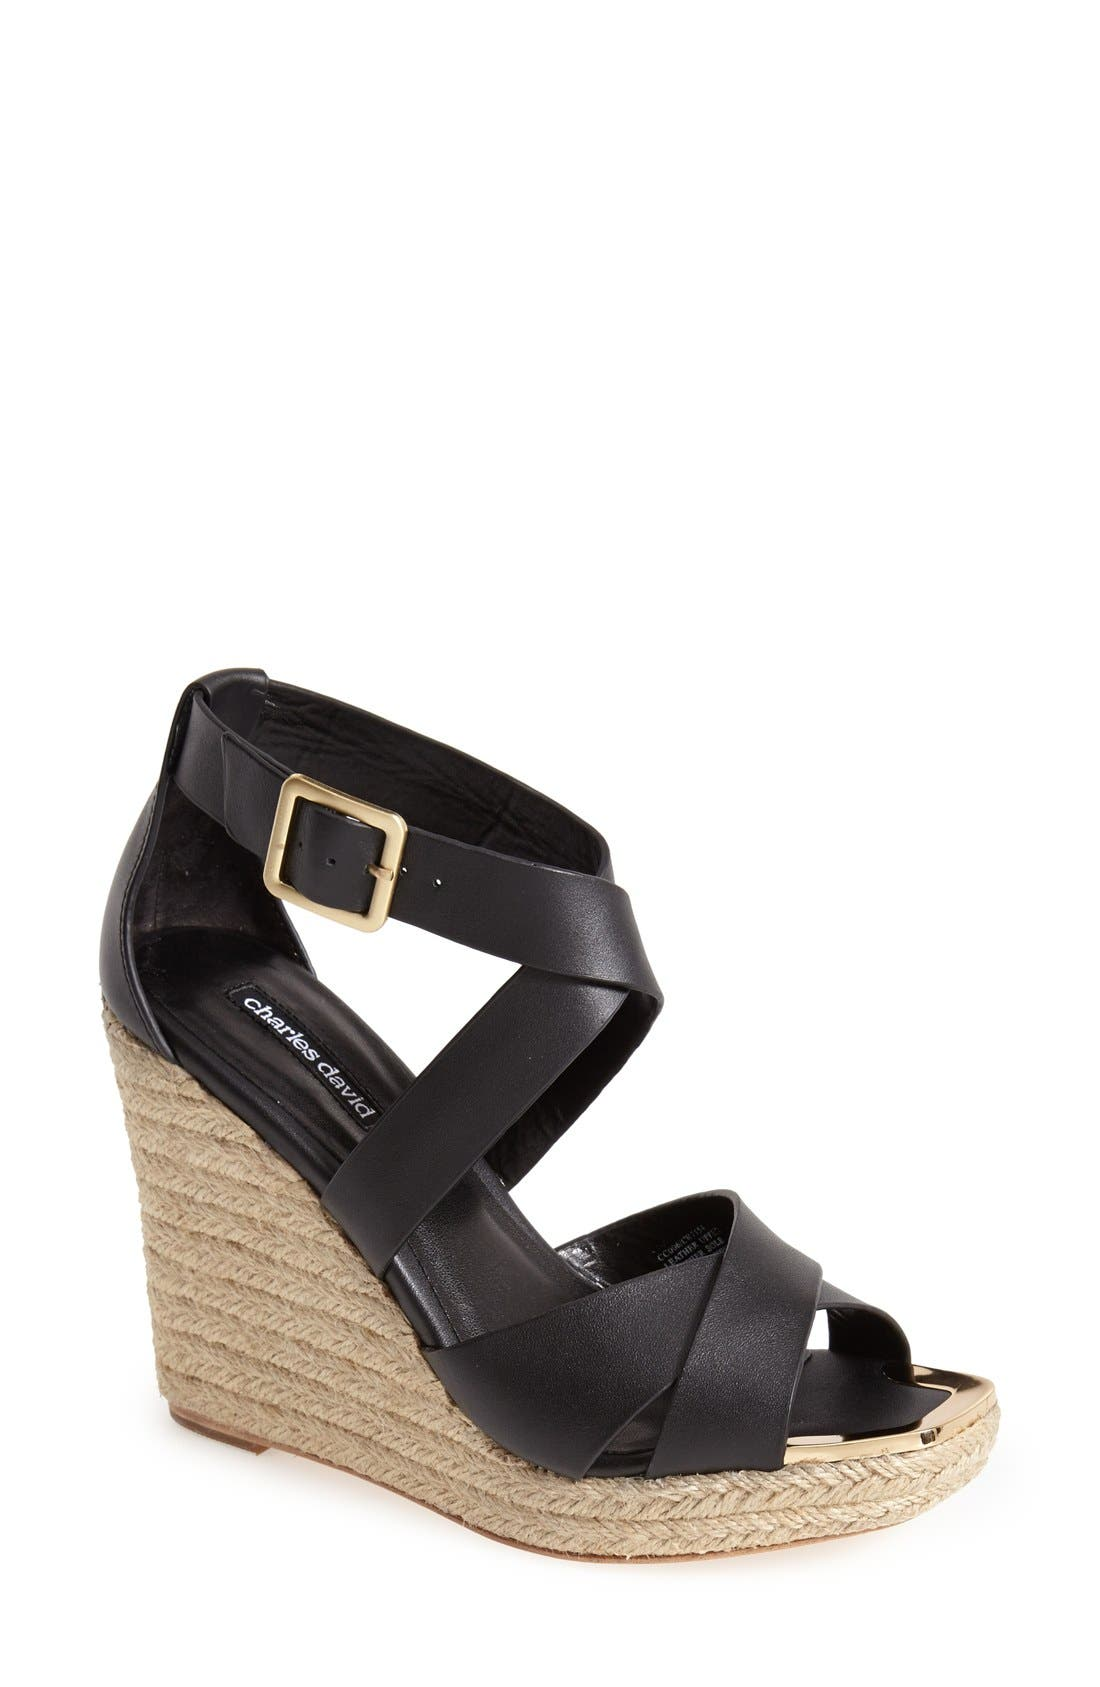 'Olympia' Wedge Sandal,                             Main thumbnail 1, color,                             001